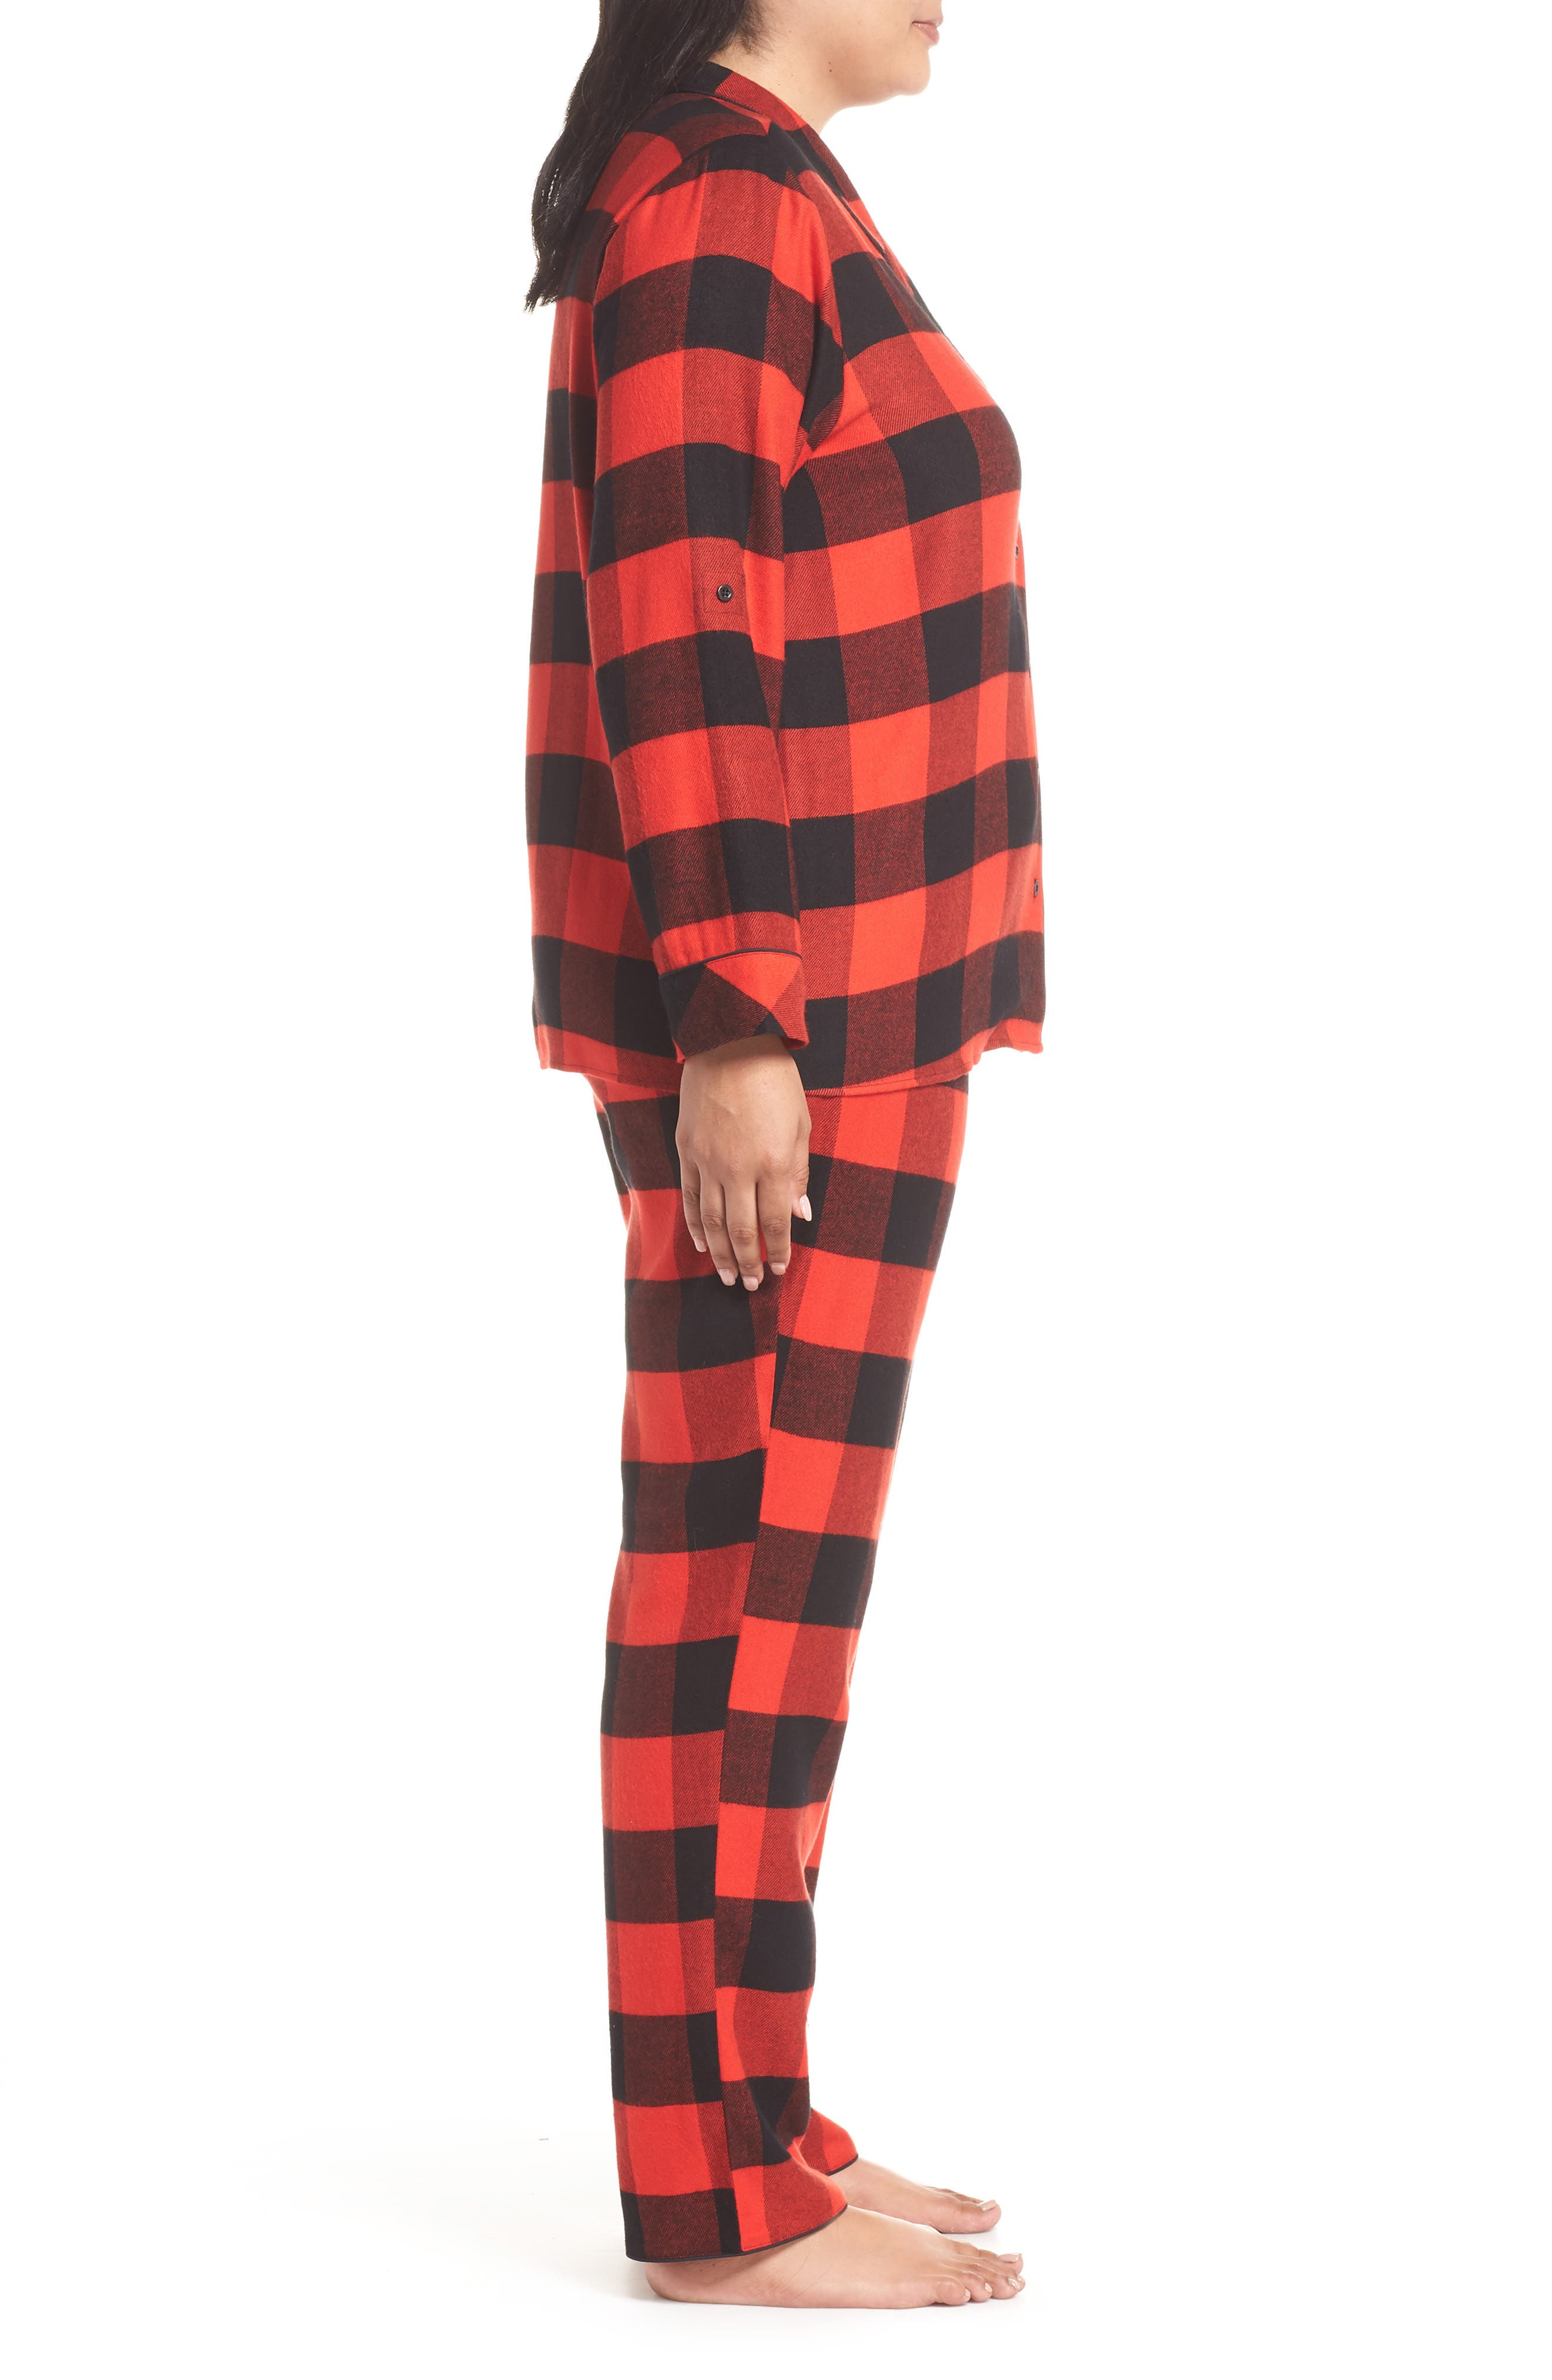 Starlight Plaid Flannel Pajamas,                             Alternate thumbnail 3, color,                             RED BLOOM LARGE BUFFALO CHECK